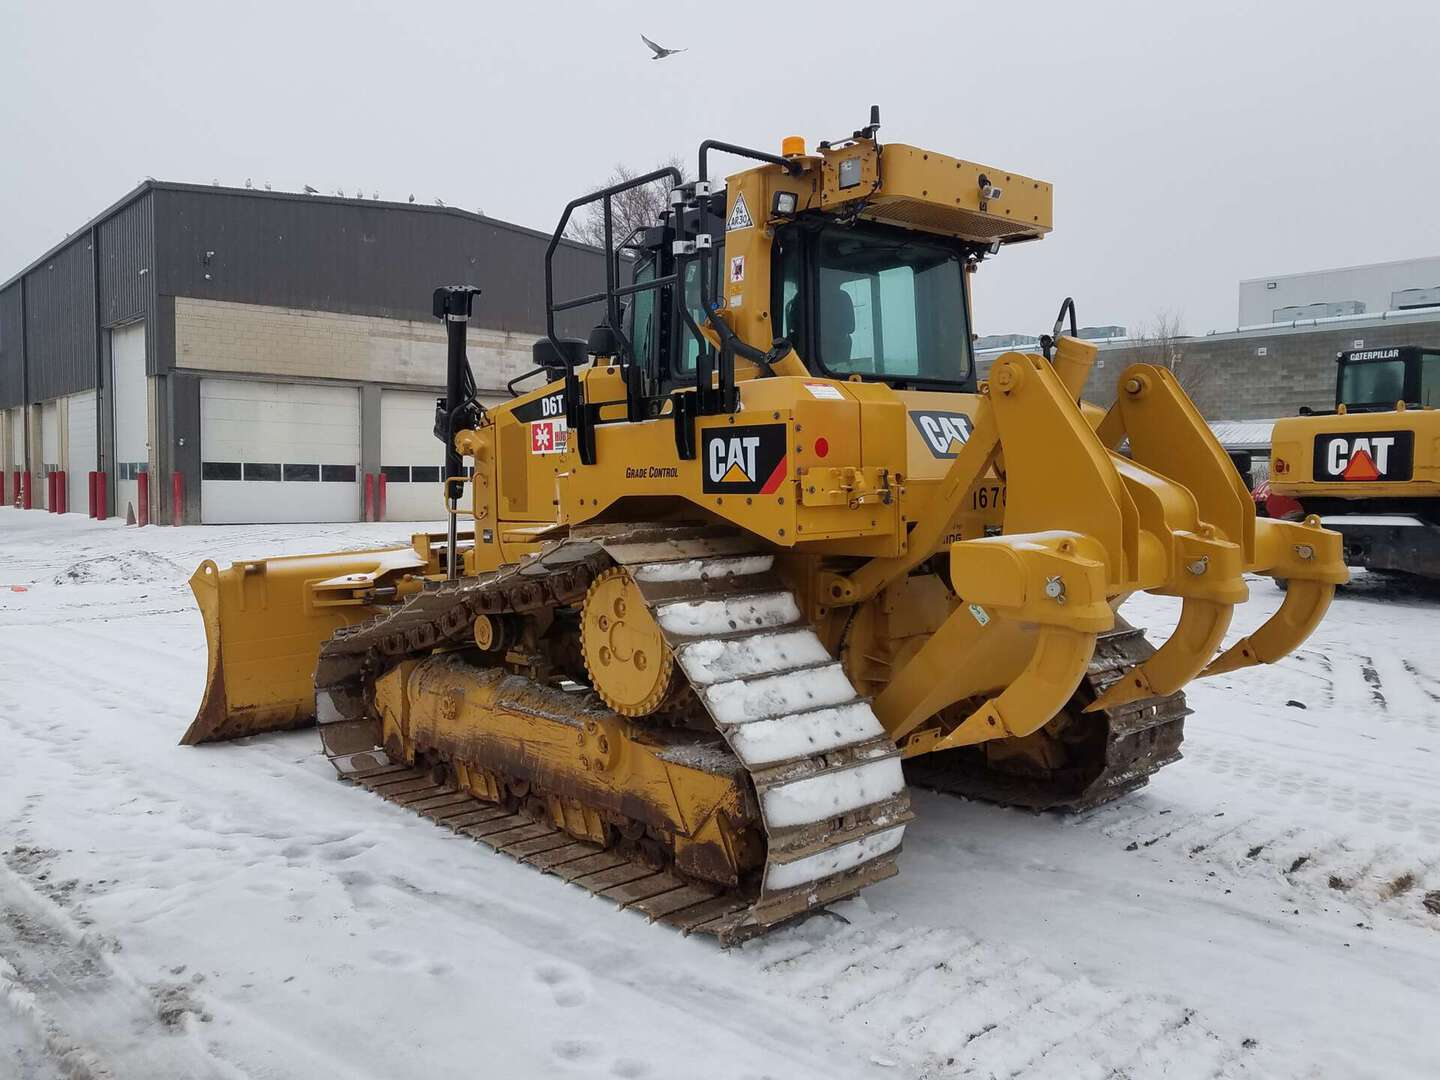 Used, 2017, CAT, D6T LGP VP, Bulldozers